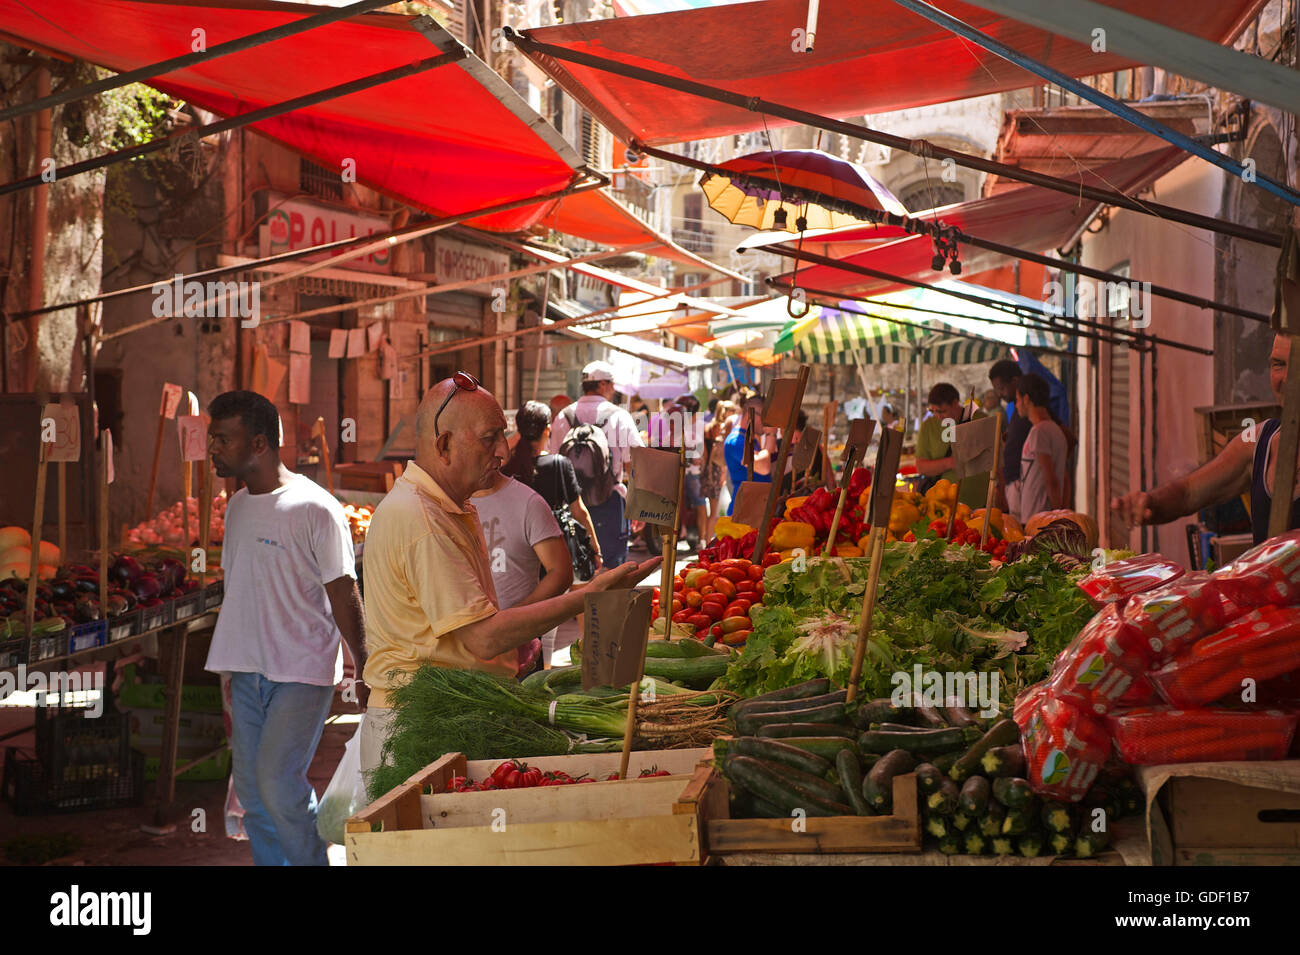 Market in Palermo, Sicily, Italy - Stock Image